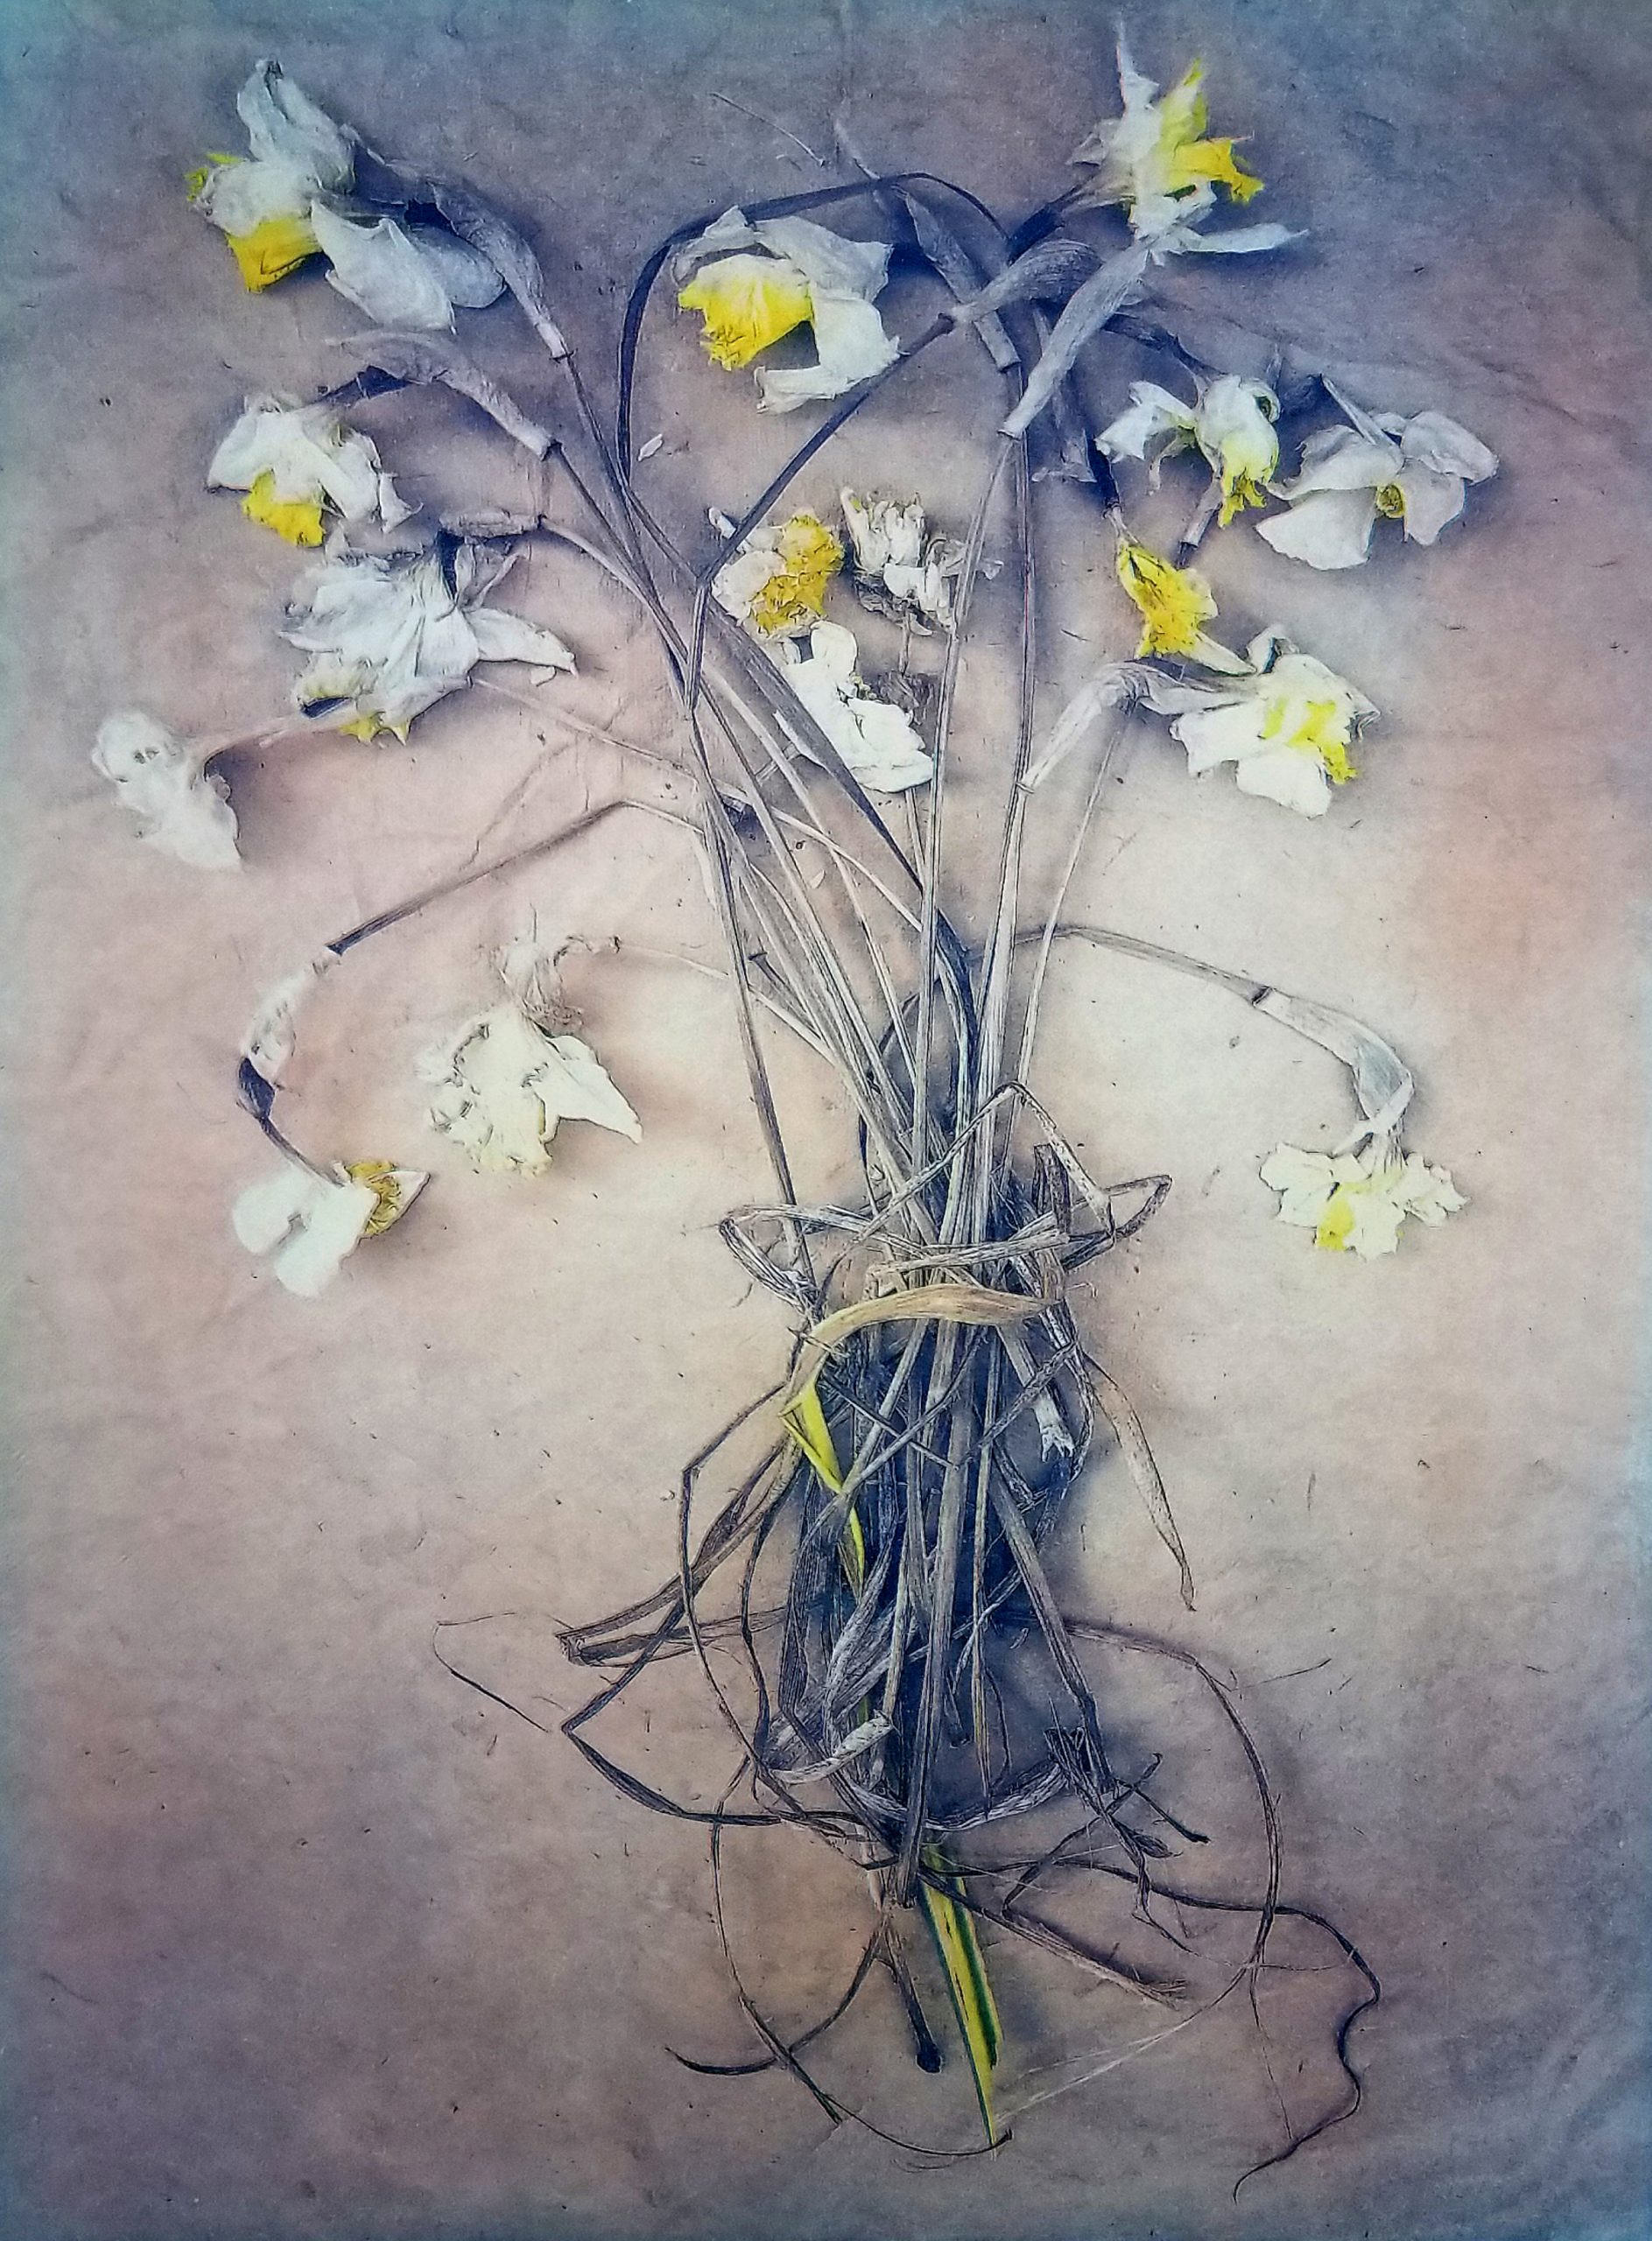 Diana H. Bloomfield, Daffodils, 2019. Courtesy of the artist.